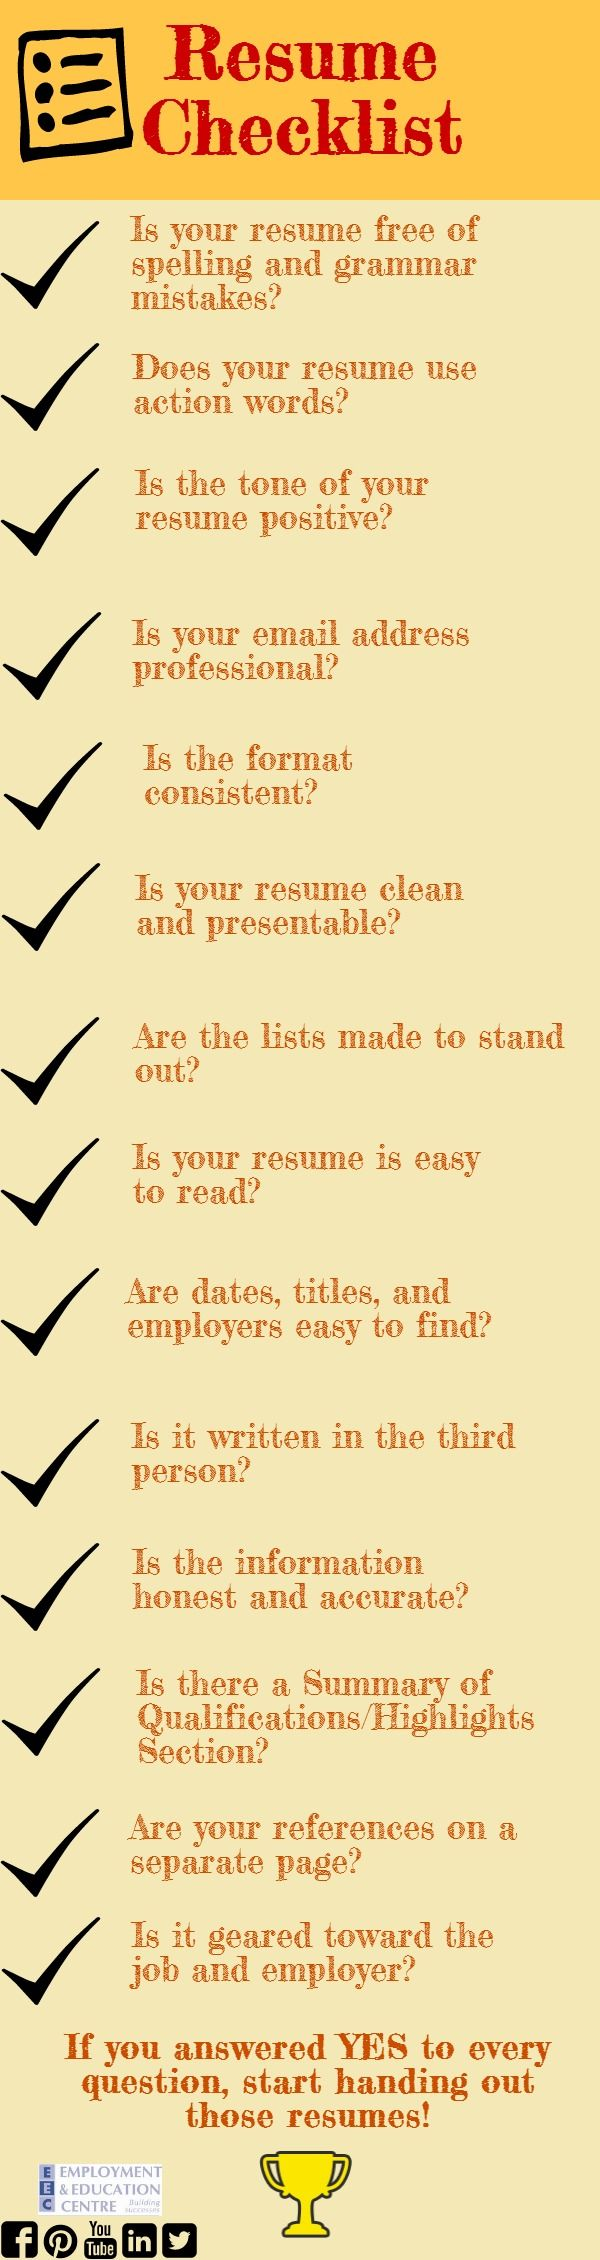 Job Skills List For Resume Check Out This List Before You Hand Out Your Resume  Career